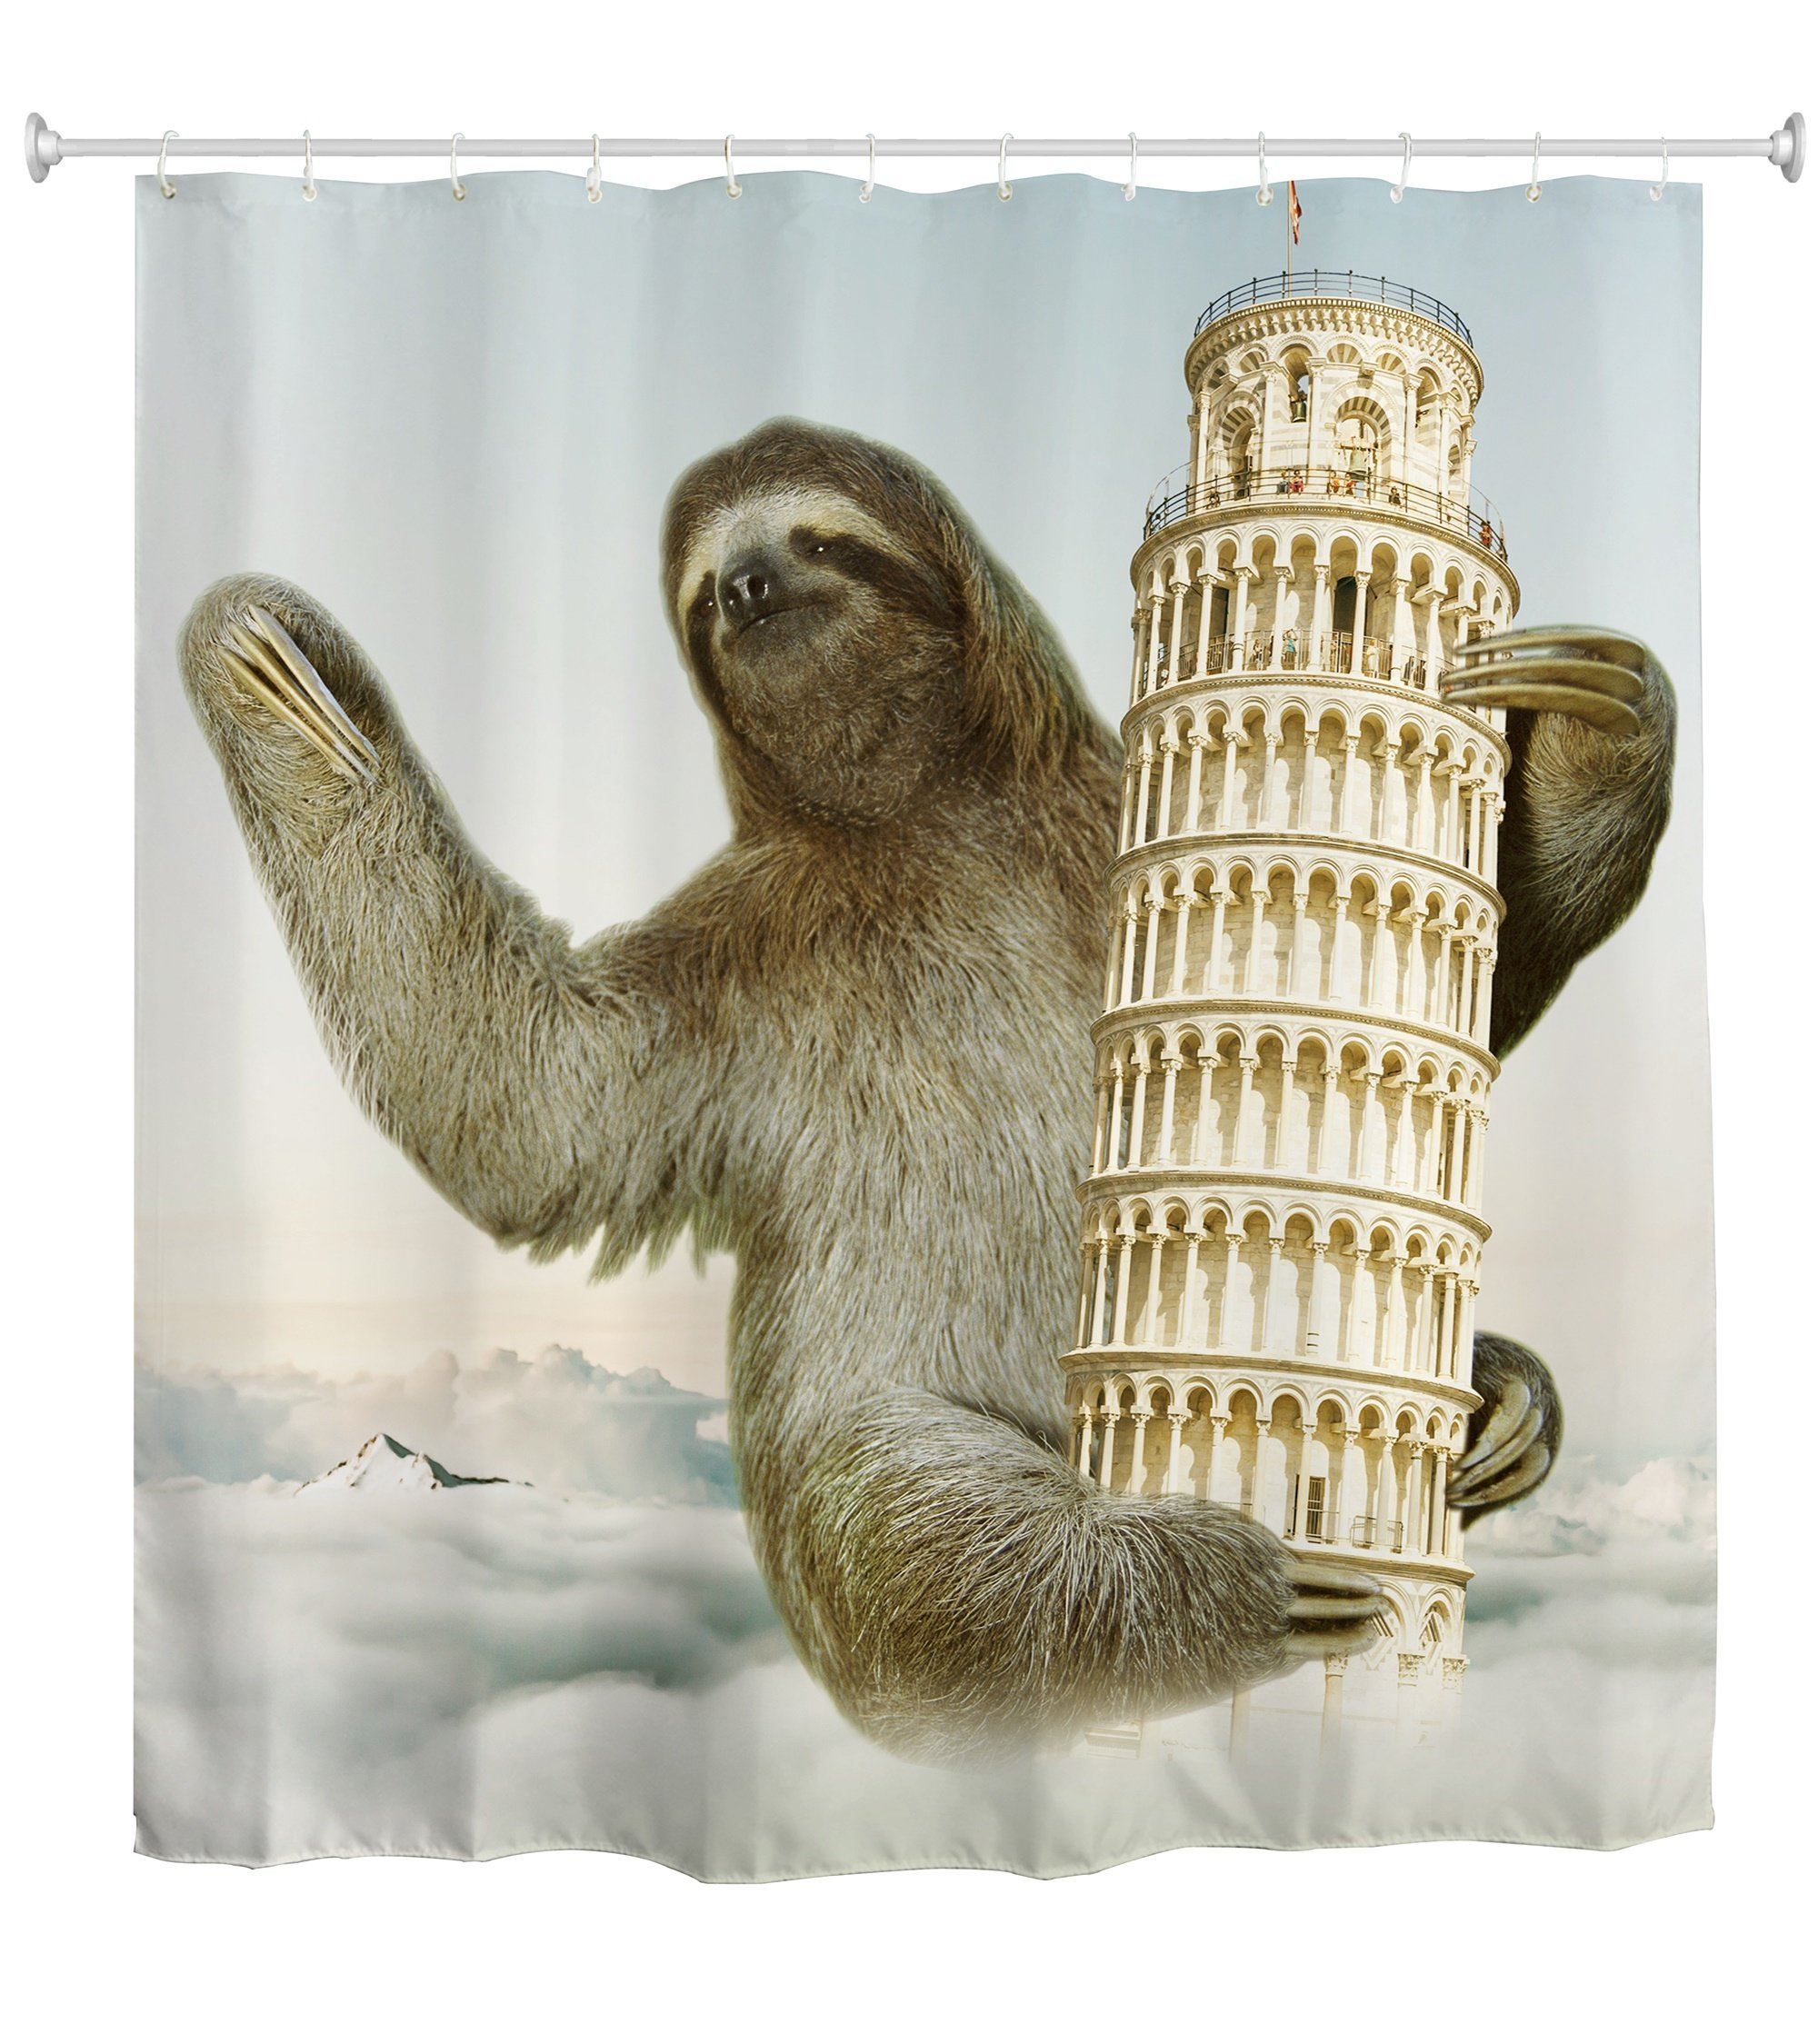 QIYI Sloth Shower Curtain Mildew Resistant,Anti-Bacterial,No Any Chemical Odor,Silky 100% Polyester Fabric,Easy to Rinse Off and Hang for Bathroom 60'' W x 72'' L-Leaning Tower and Sloth